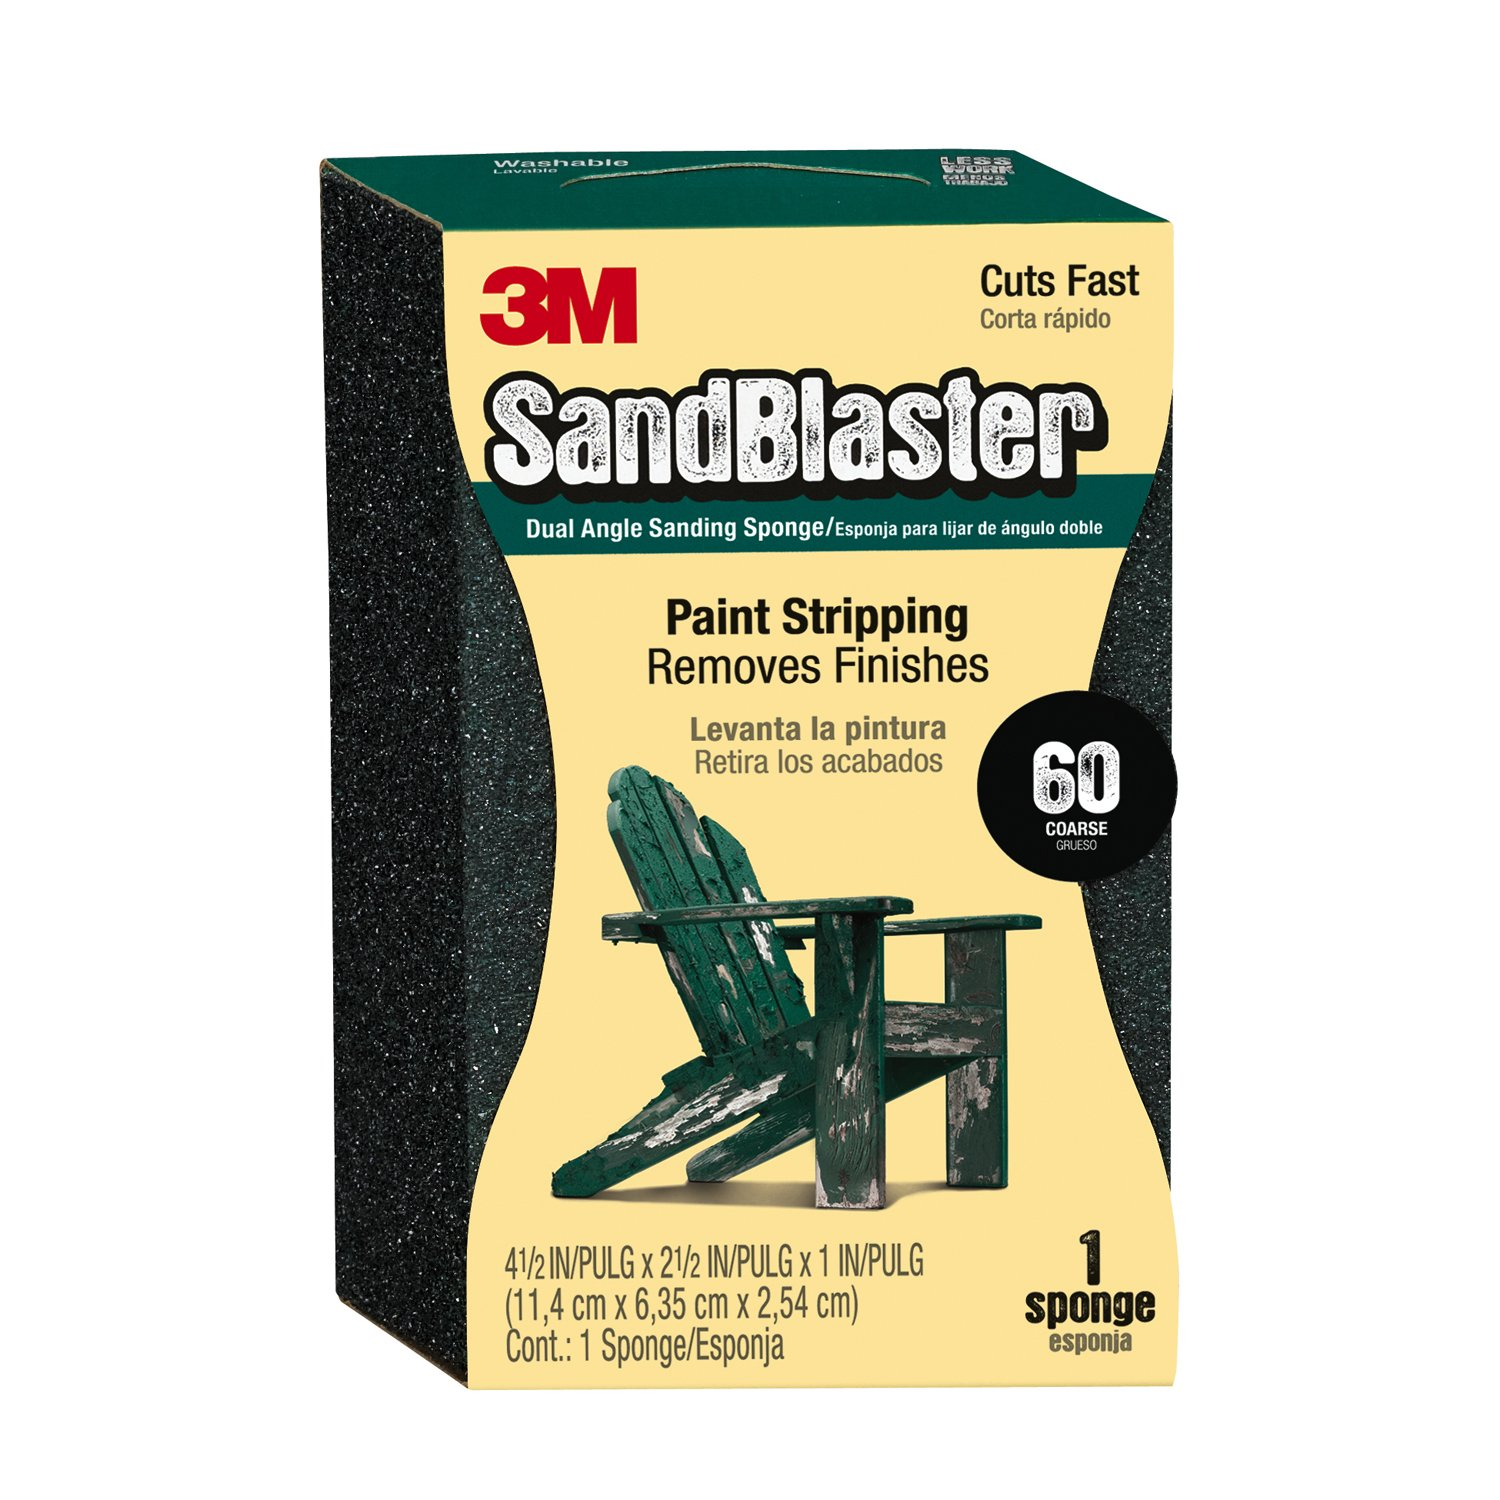 3M P60 SandBlaster Coarse Dual Angle Sanding Sponge for Paint Stripping, 9558 - (Pack of 1)